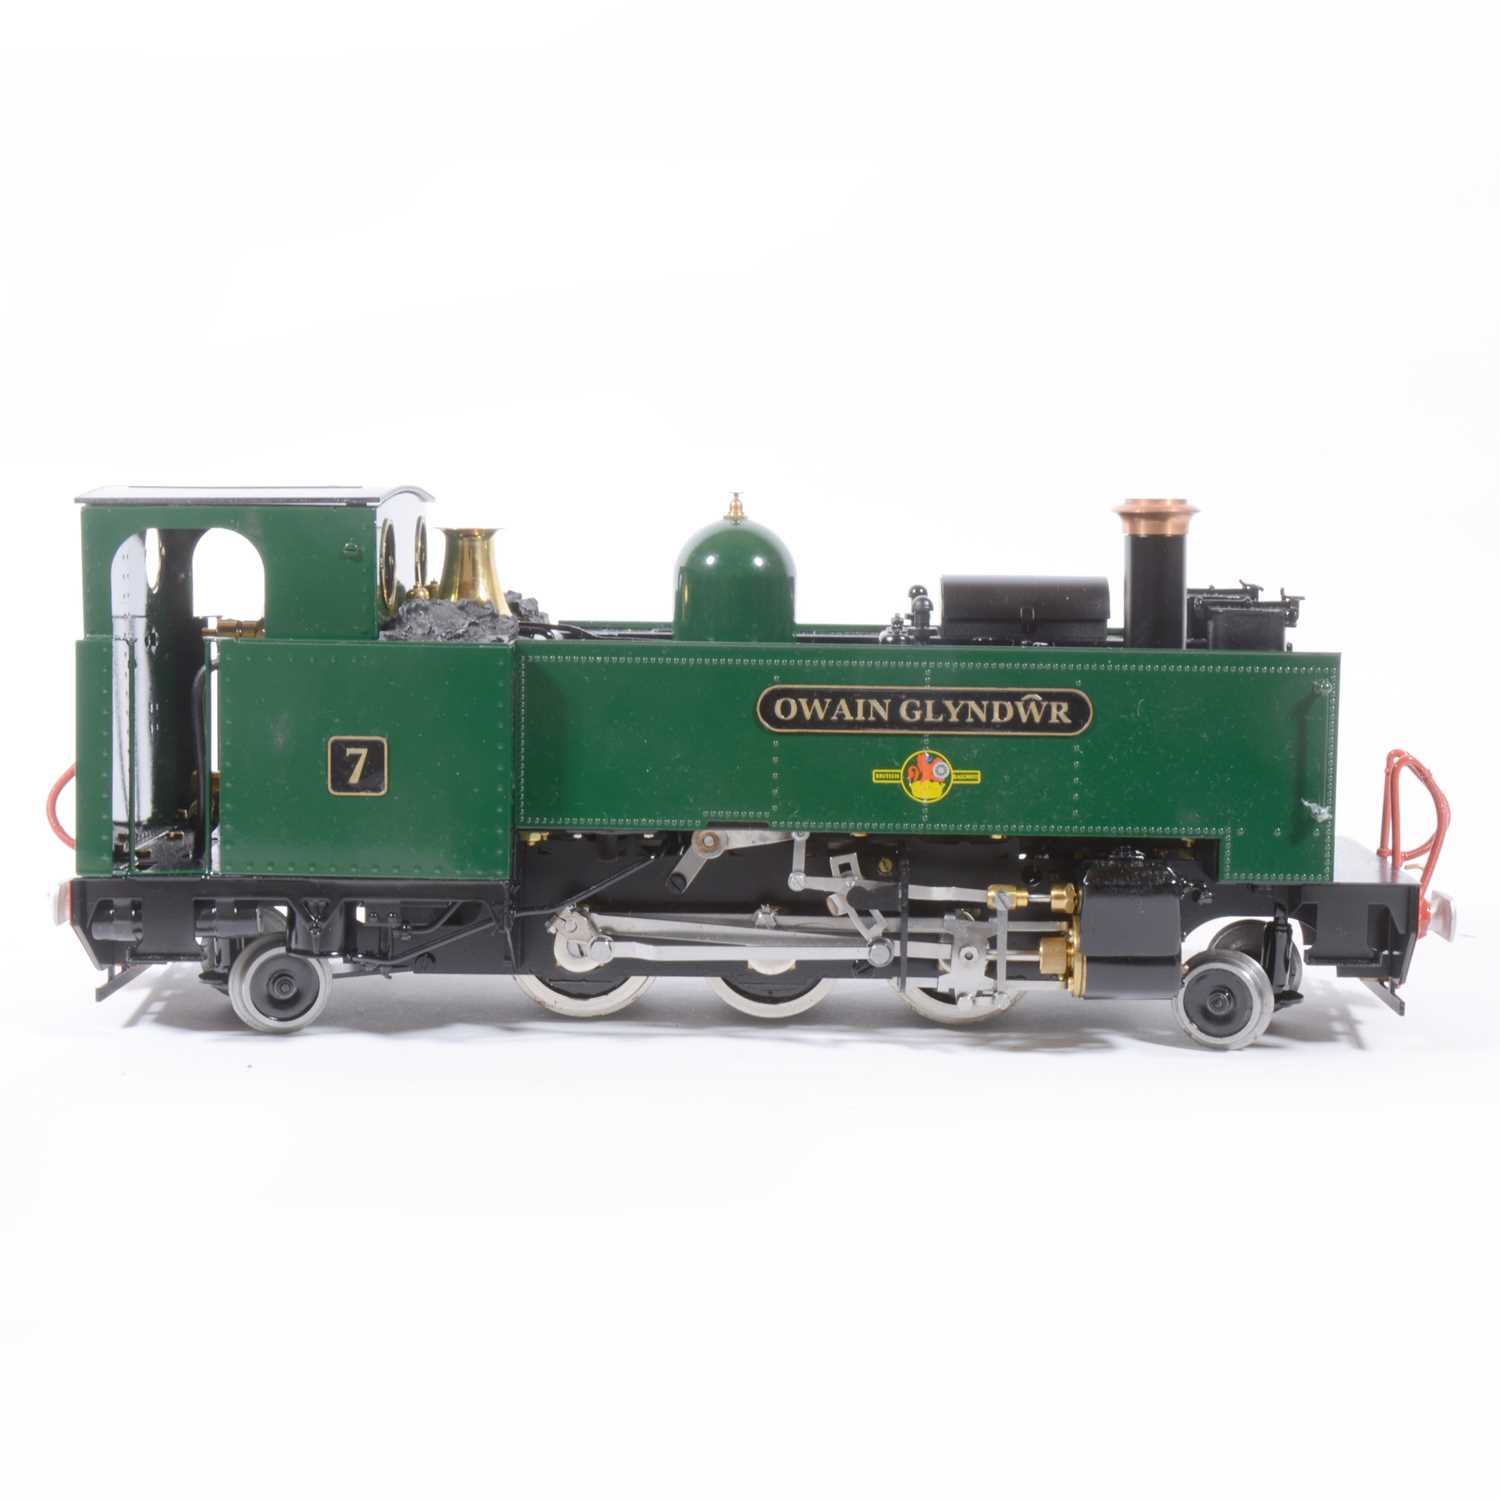 Lot 8 - Roundhouse live steam, gauge 1 / G scale, 45mm locomotive, Vale of Rheidol 'Owain Glyndwr' 2-6-2 tank, no.7, with instructions, with RC